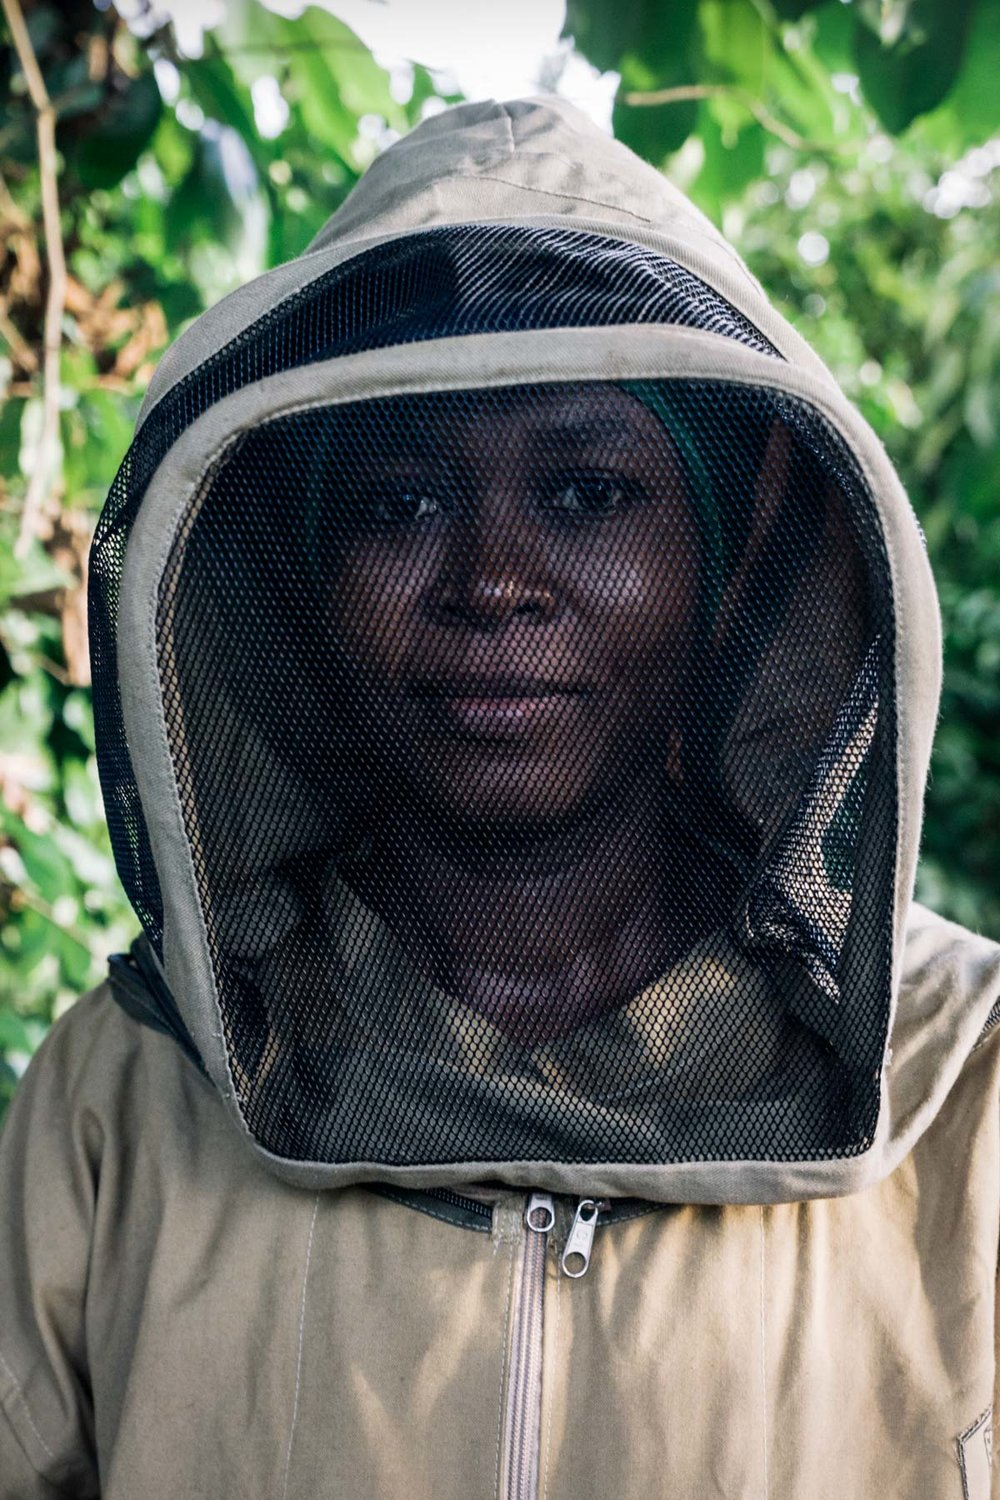 Ms. Mtumwa is learning to become a beekeeper.